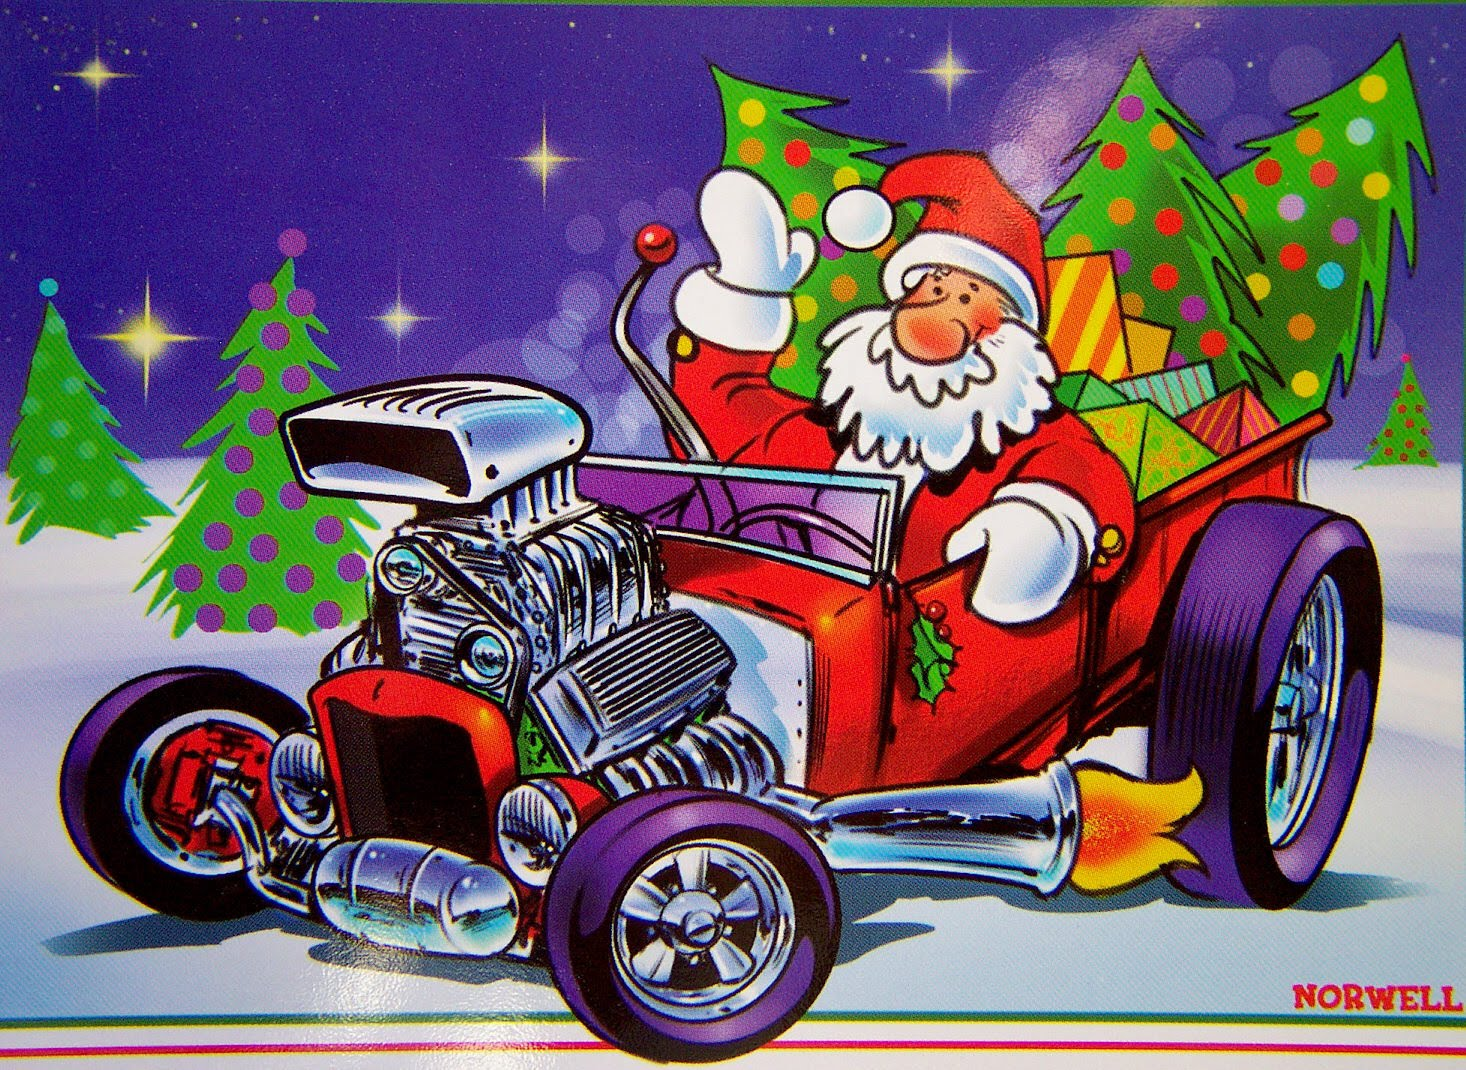 Here Is Another Great Norwell Piece For Christmas As Well A Model T Cover From An Old Card By Artist Ralph Hulett